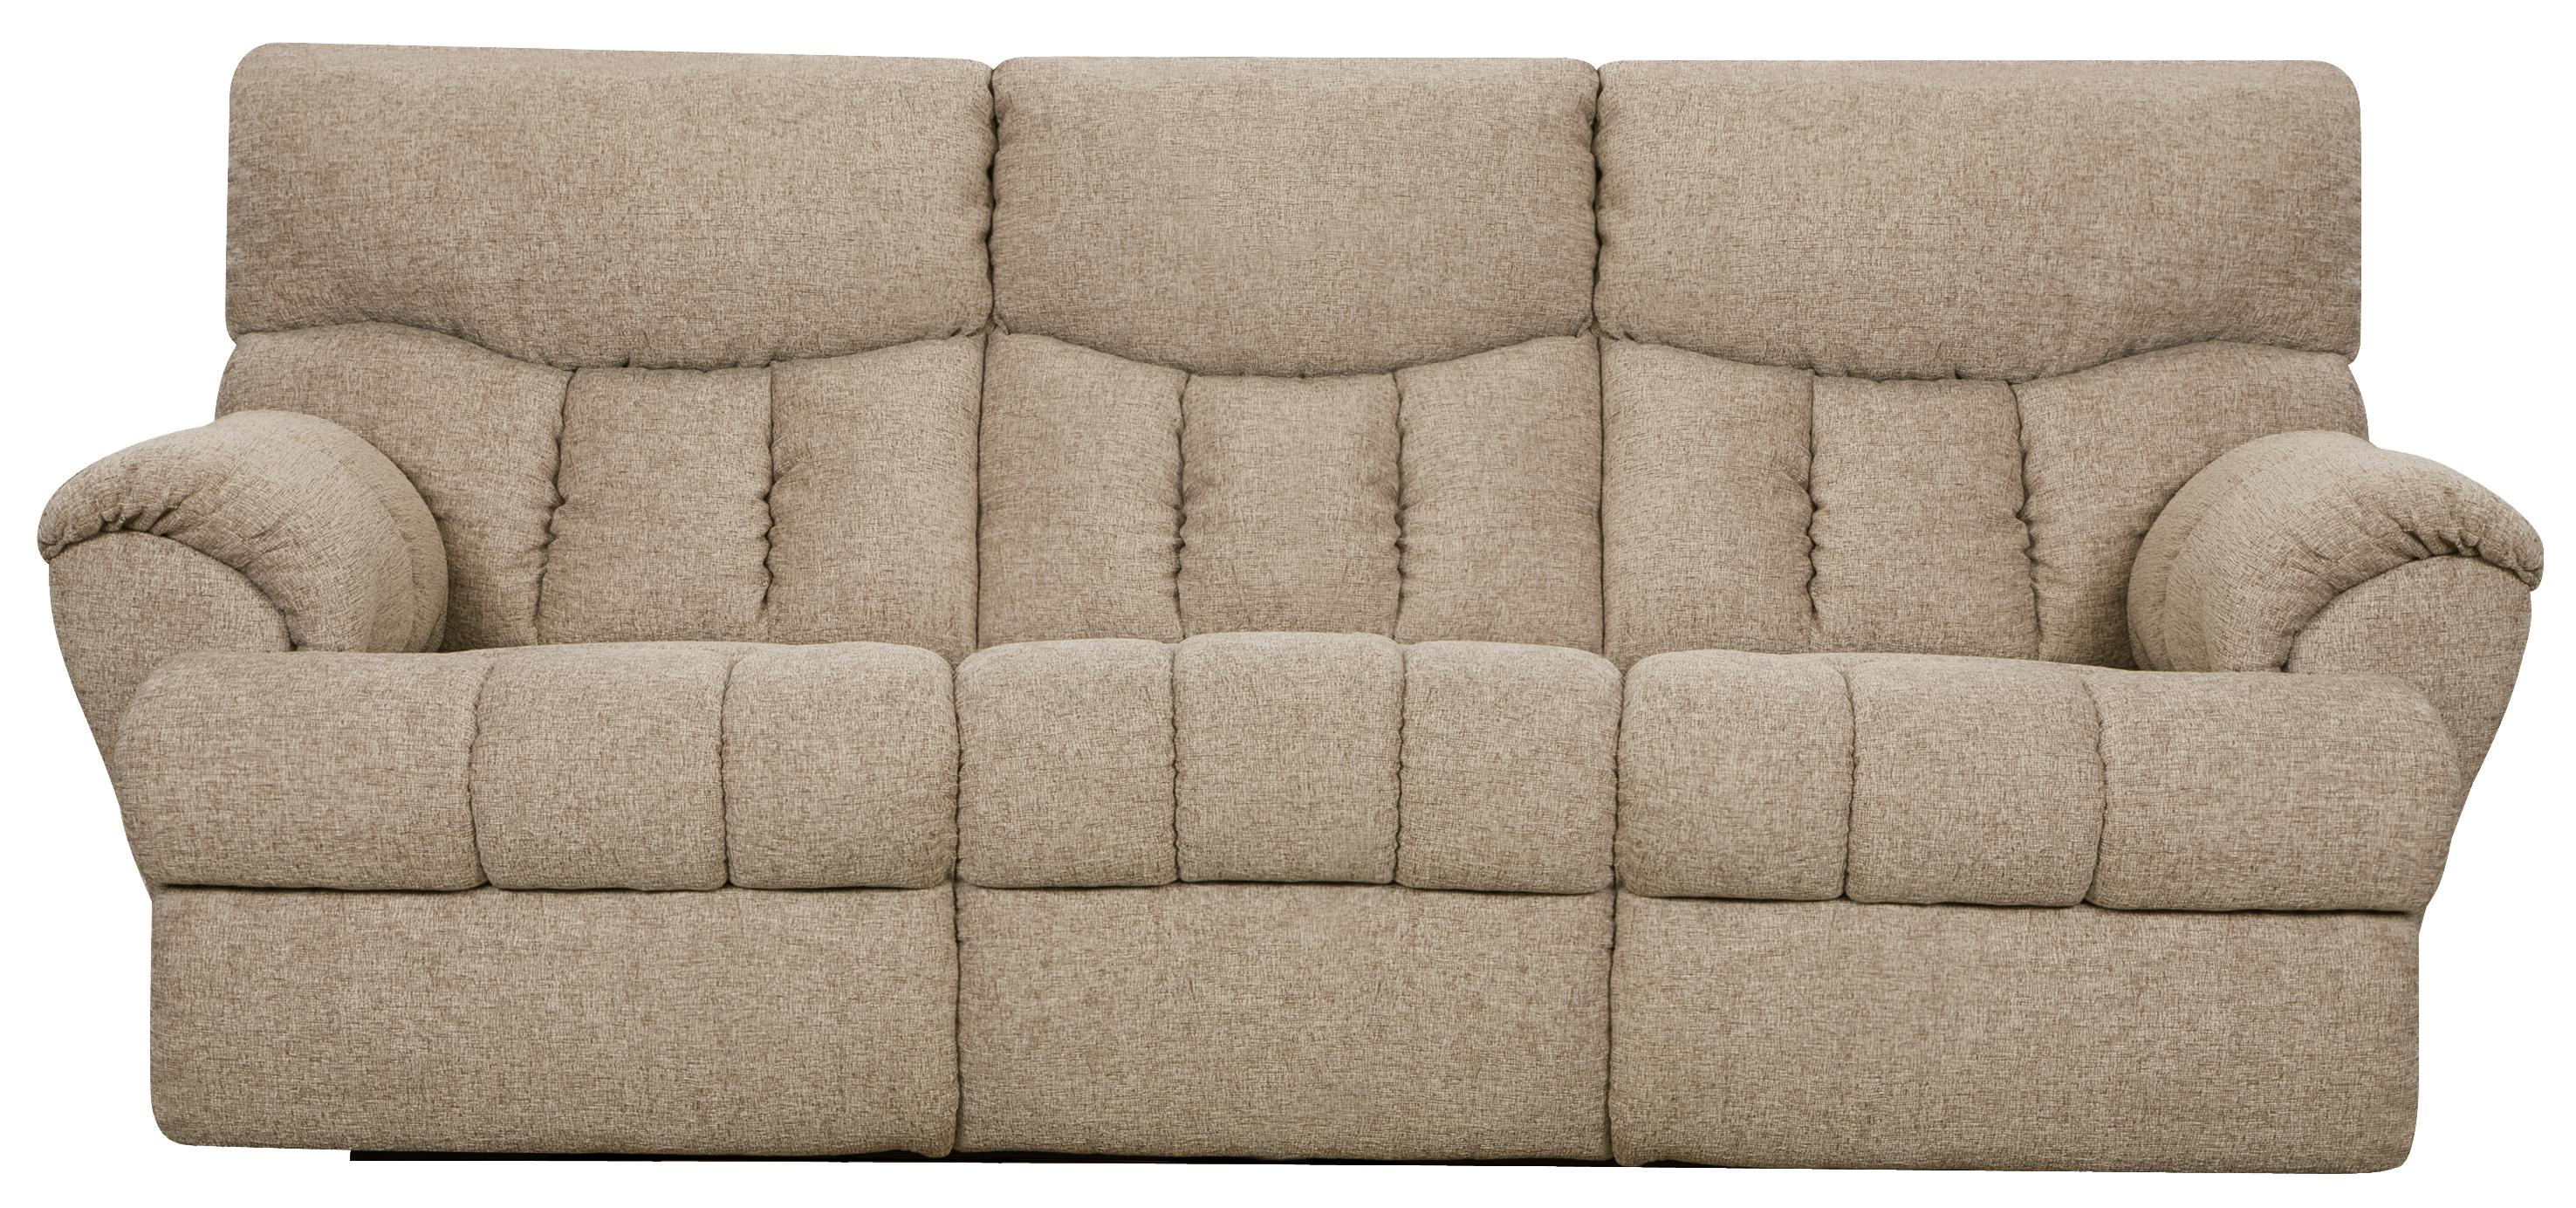 Southern motion re fueler double reclining sofa with two for Sectional sofa with reclining ends